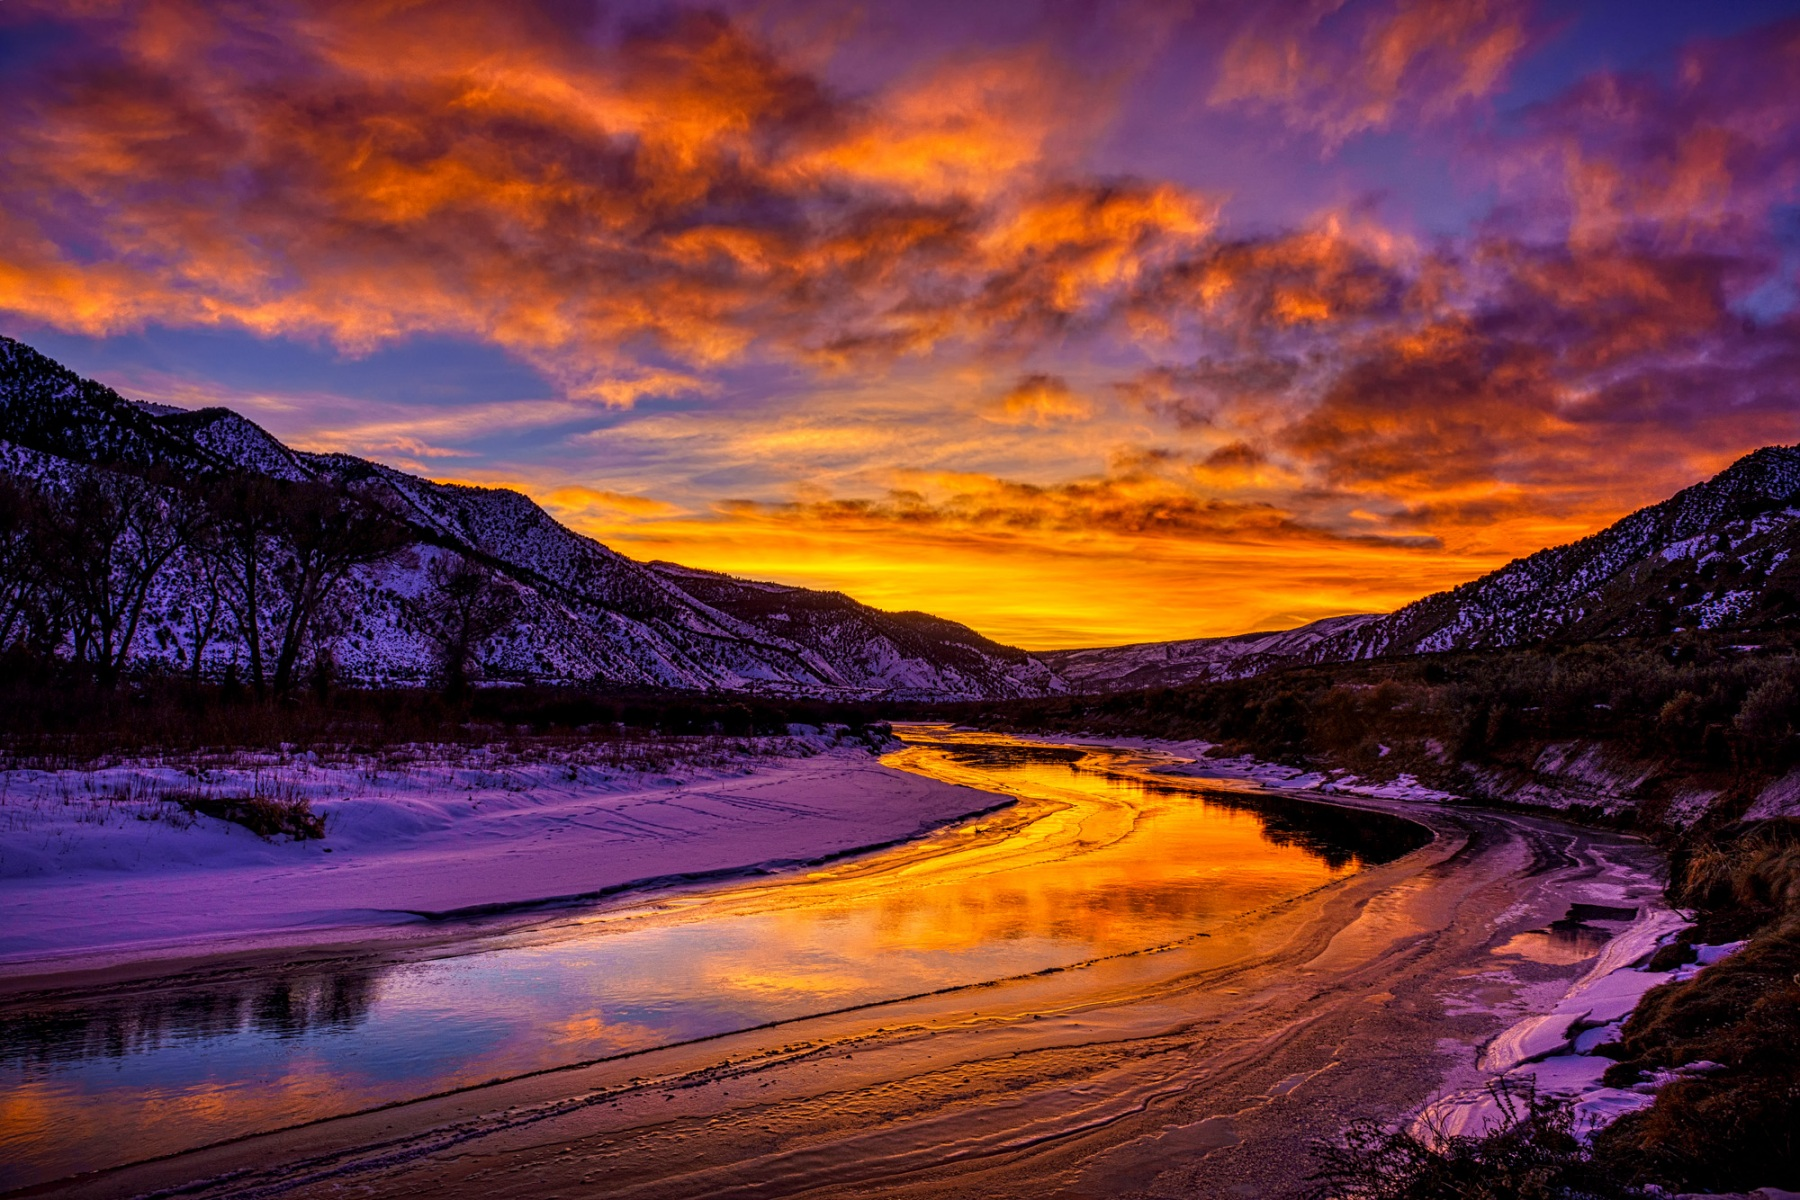 Vibrant Sunset River Reflections Landscape in Winter